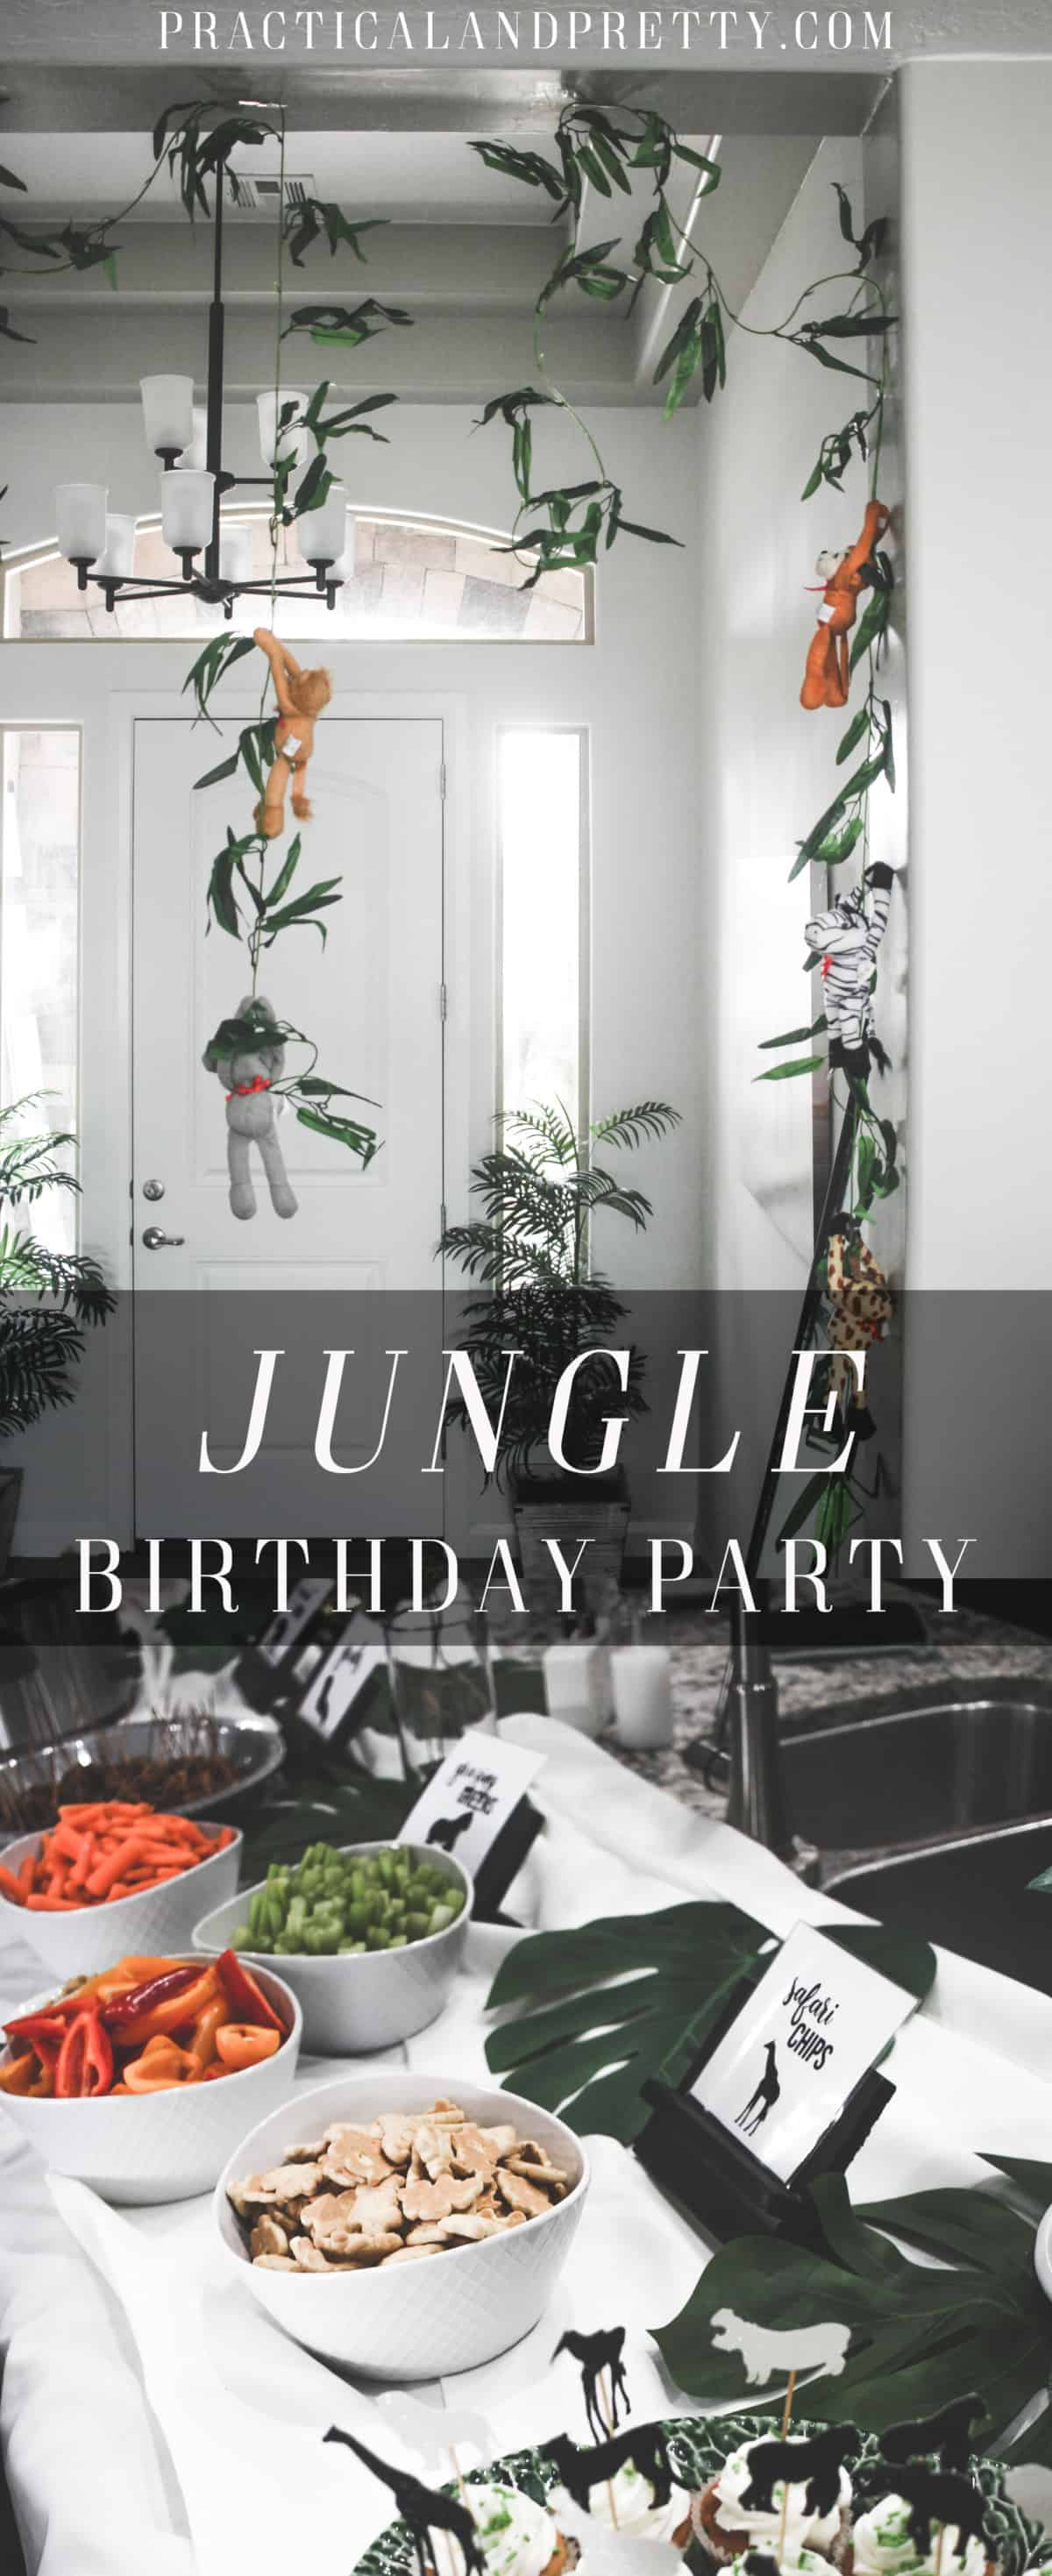 This jungle party looks so fun and was so simple to put together! Check out all the free printables included too!